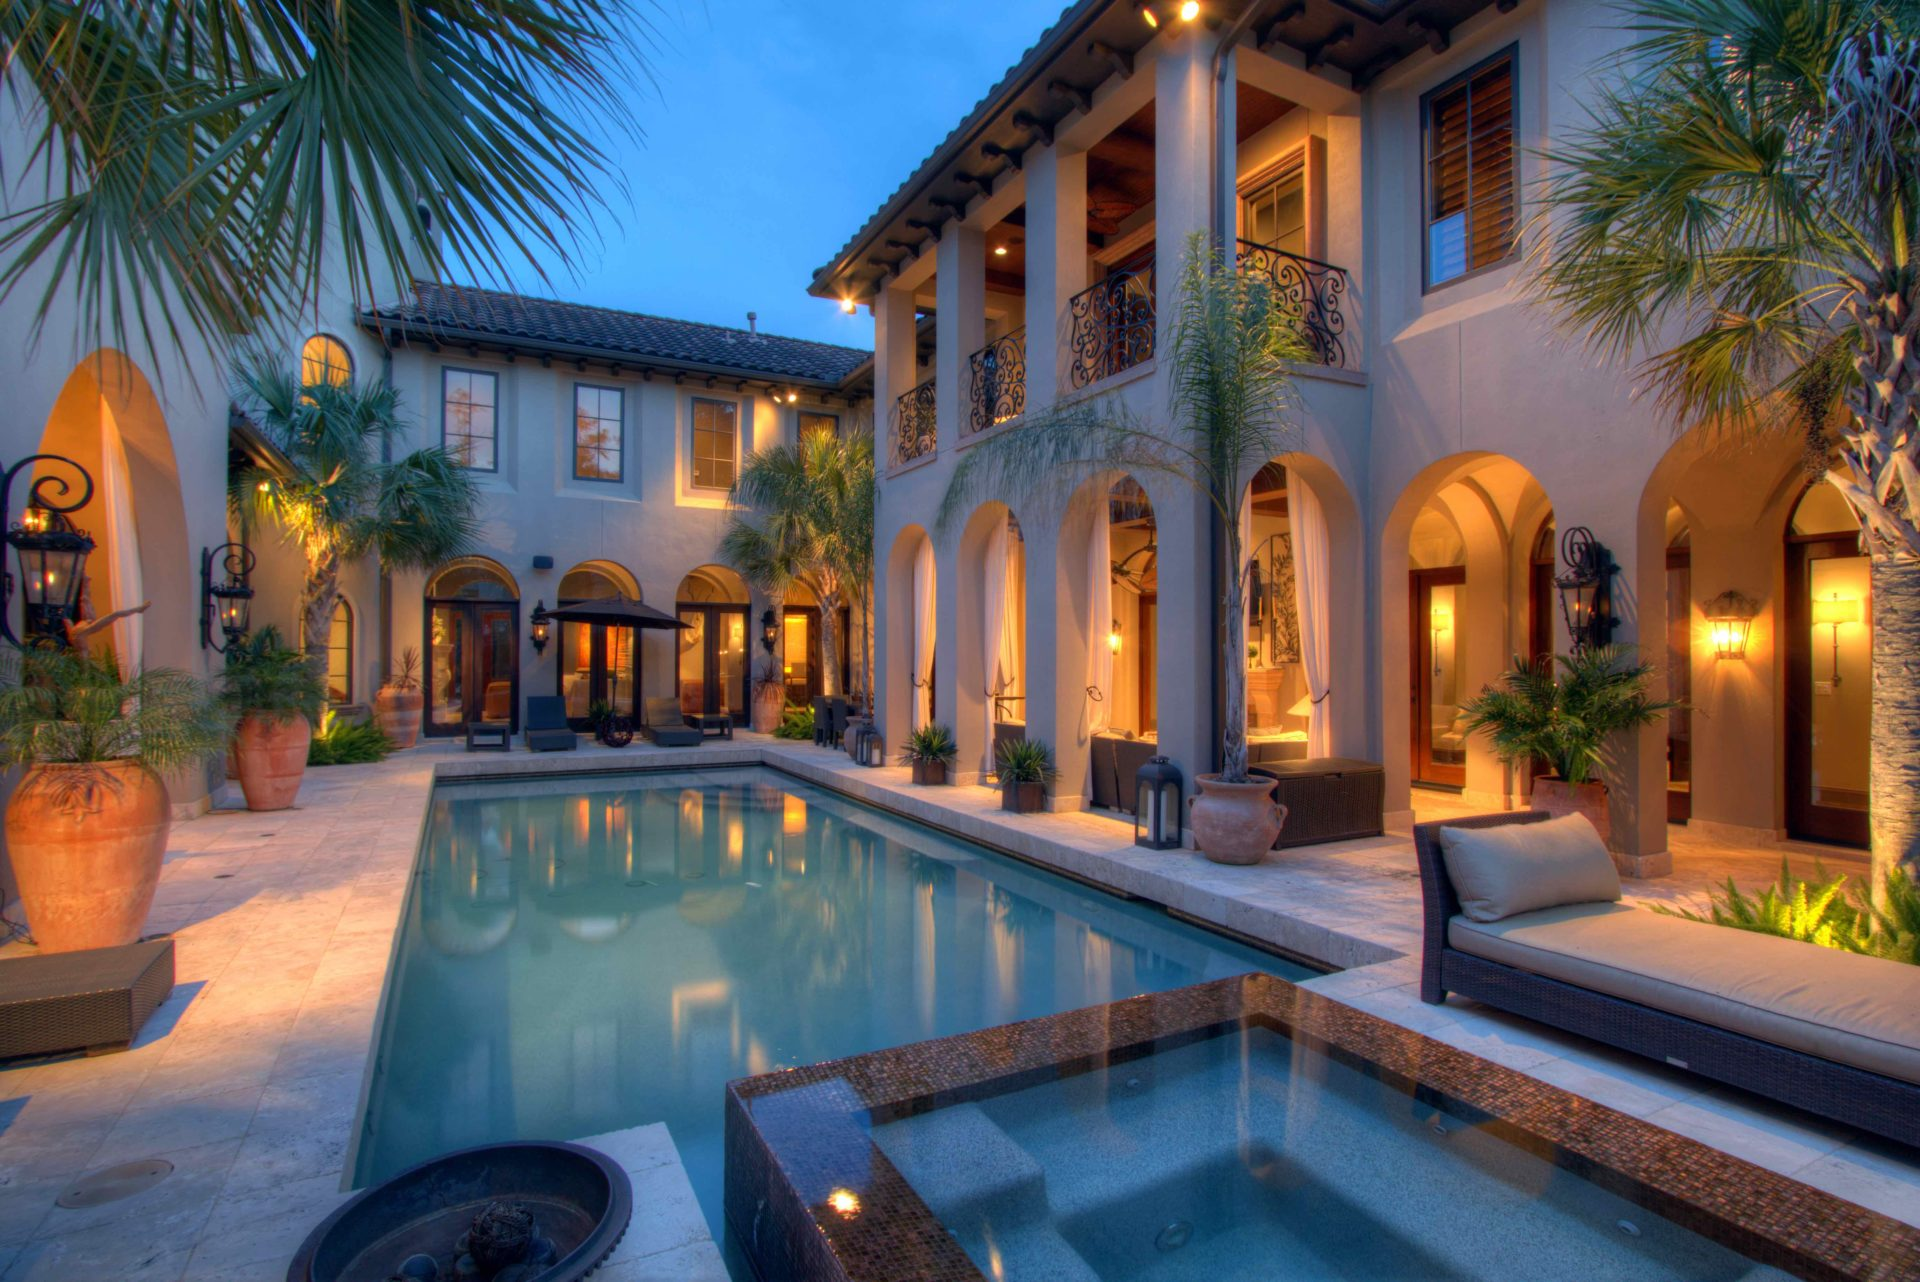 Buy Luxury Real Estate in The Woodlands Texas